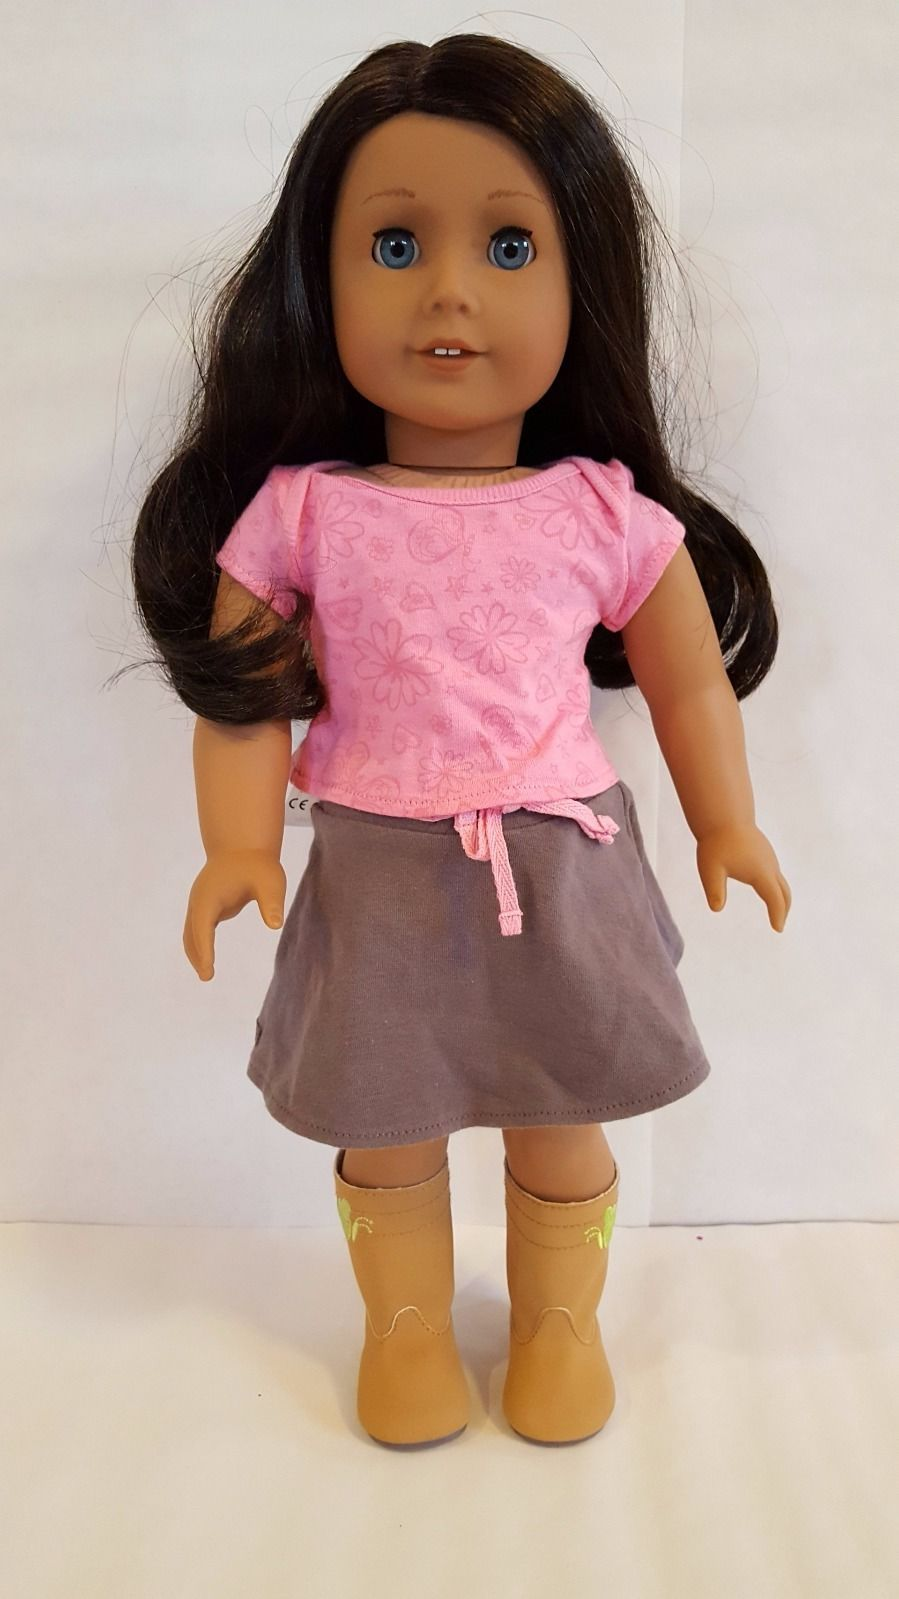 American Girl Just Like You Doll Dark Hair Blue Eyes 49 Truly